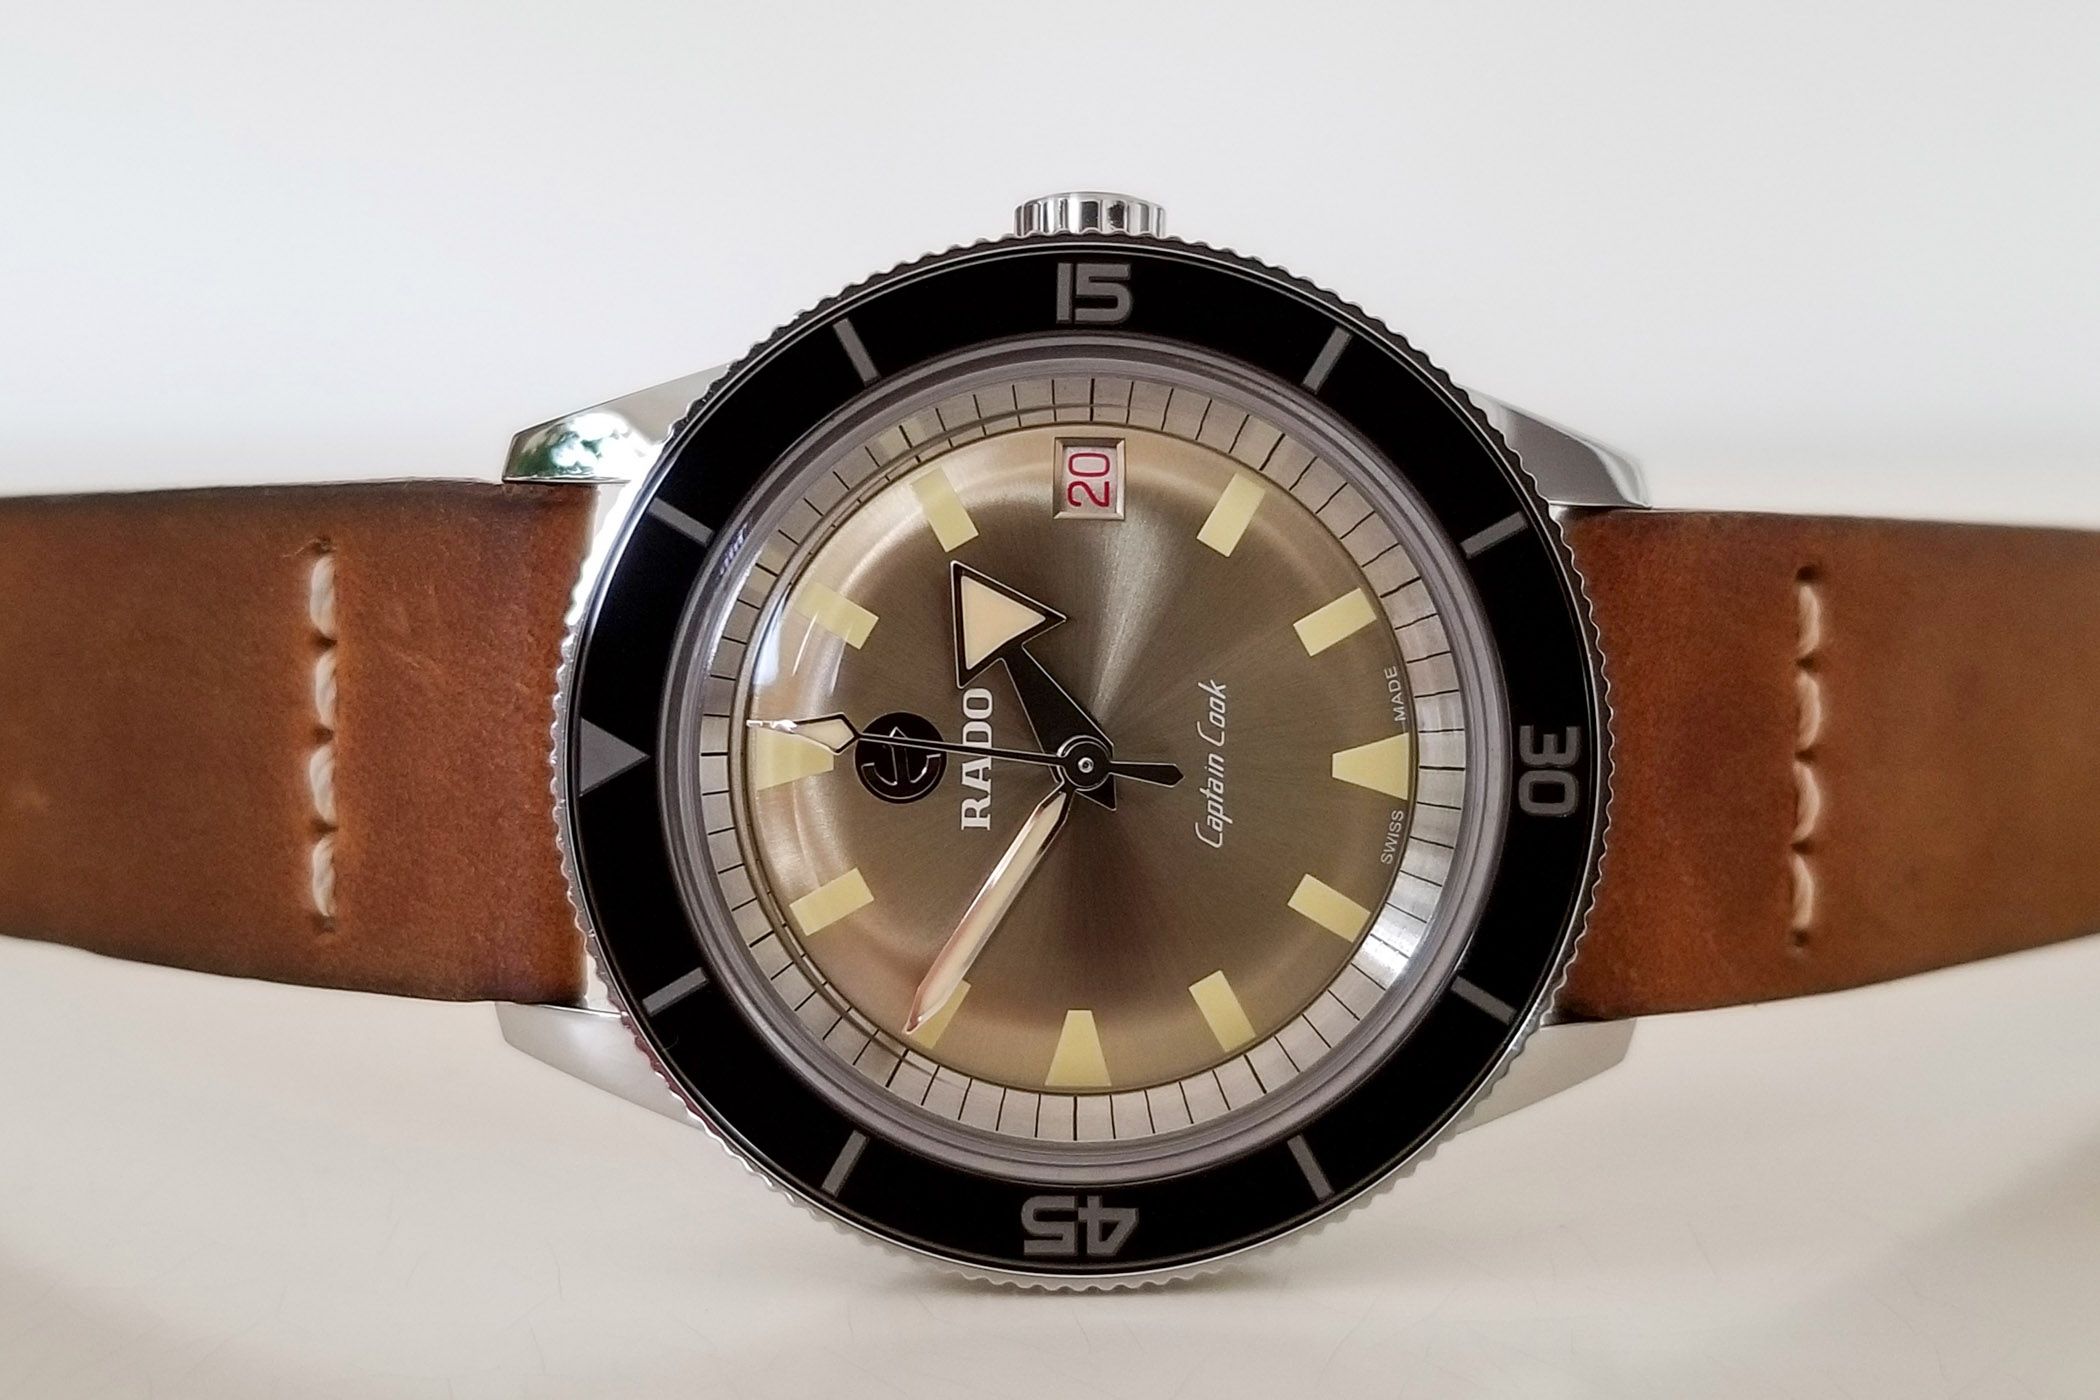 2019 Rado Captain Cook Limited Edition 37mm